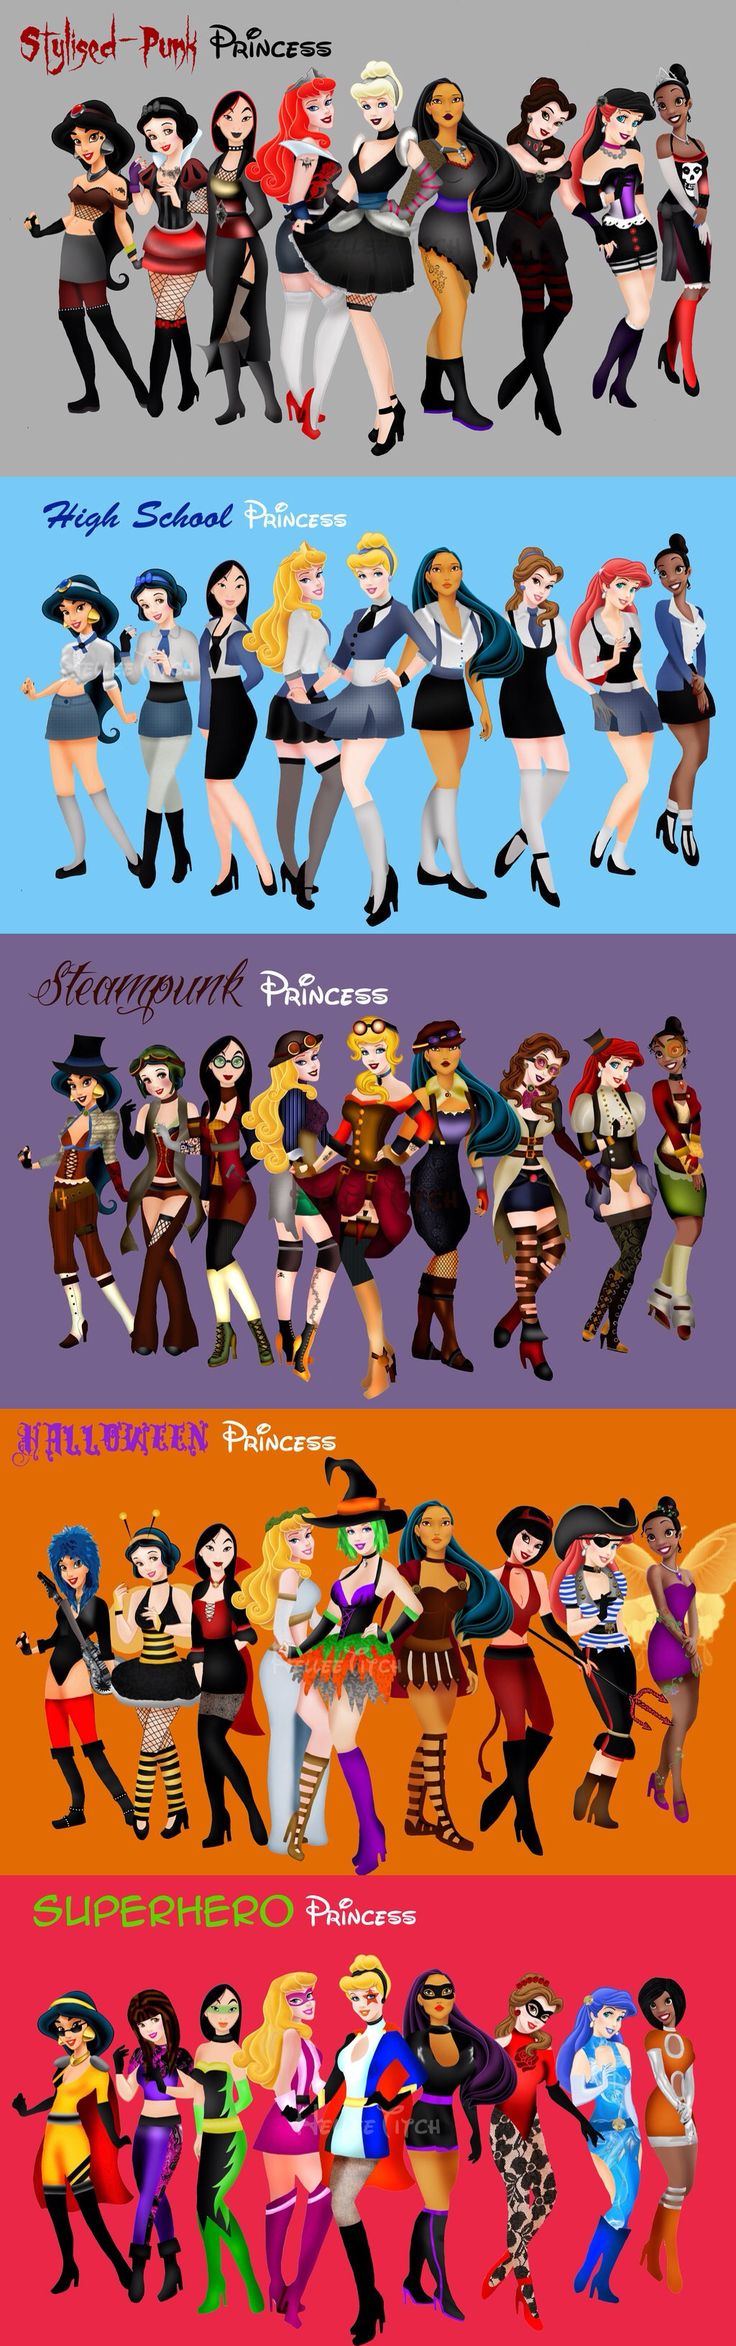 Stylised-Punk, High School, Steampunk, Halloween, and Superhero Disney Princesses by HelleeTitch on deviantART